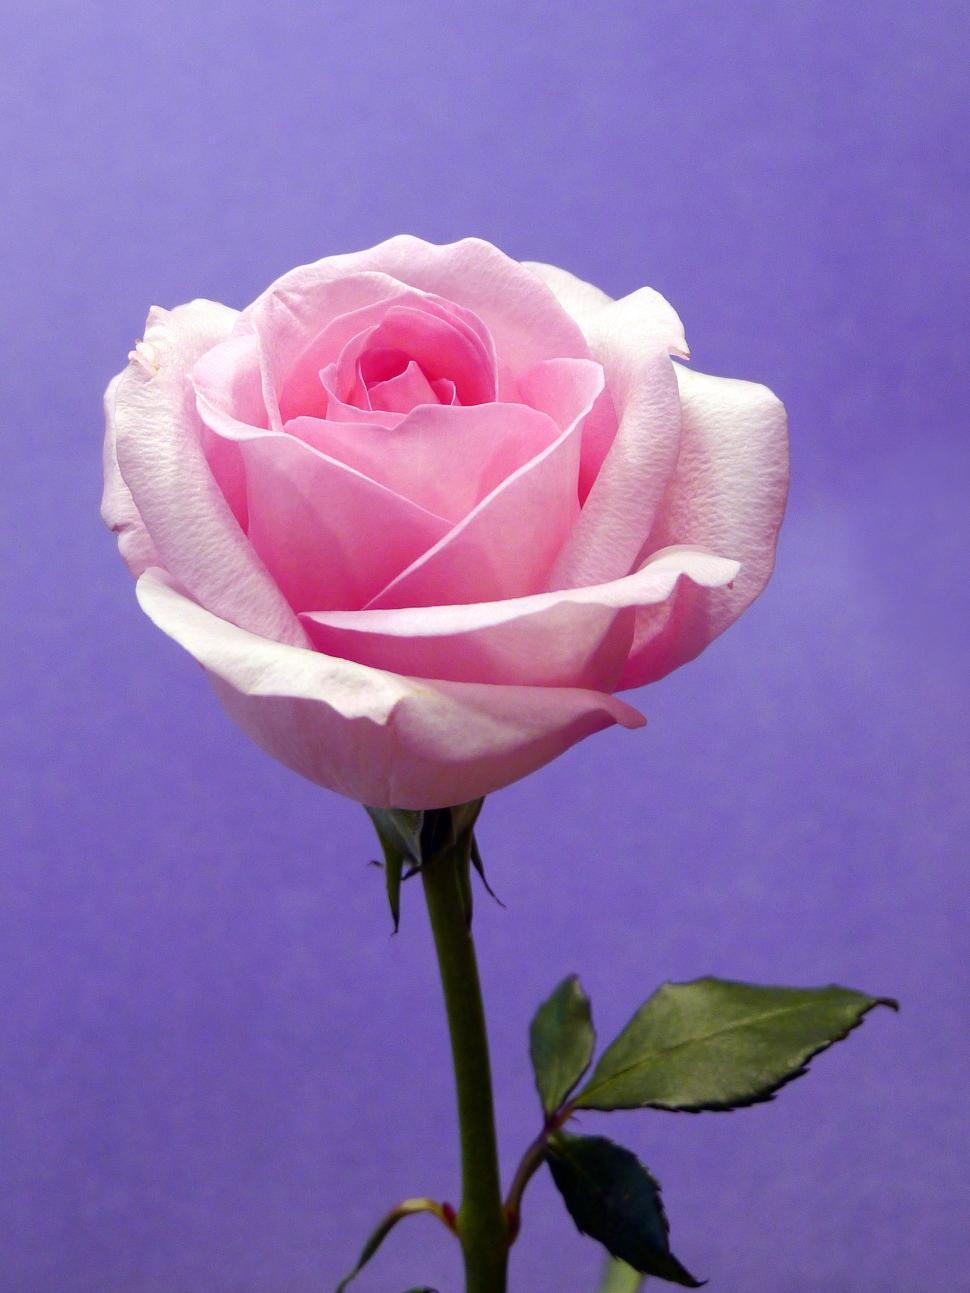 Download Free Stock HD Photo of Purple Background with Pink Rose Bloom Online